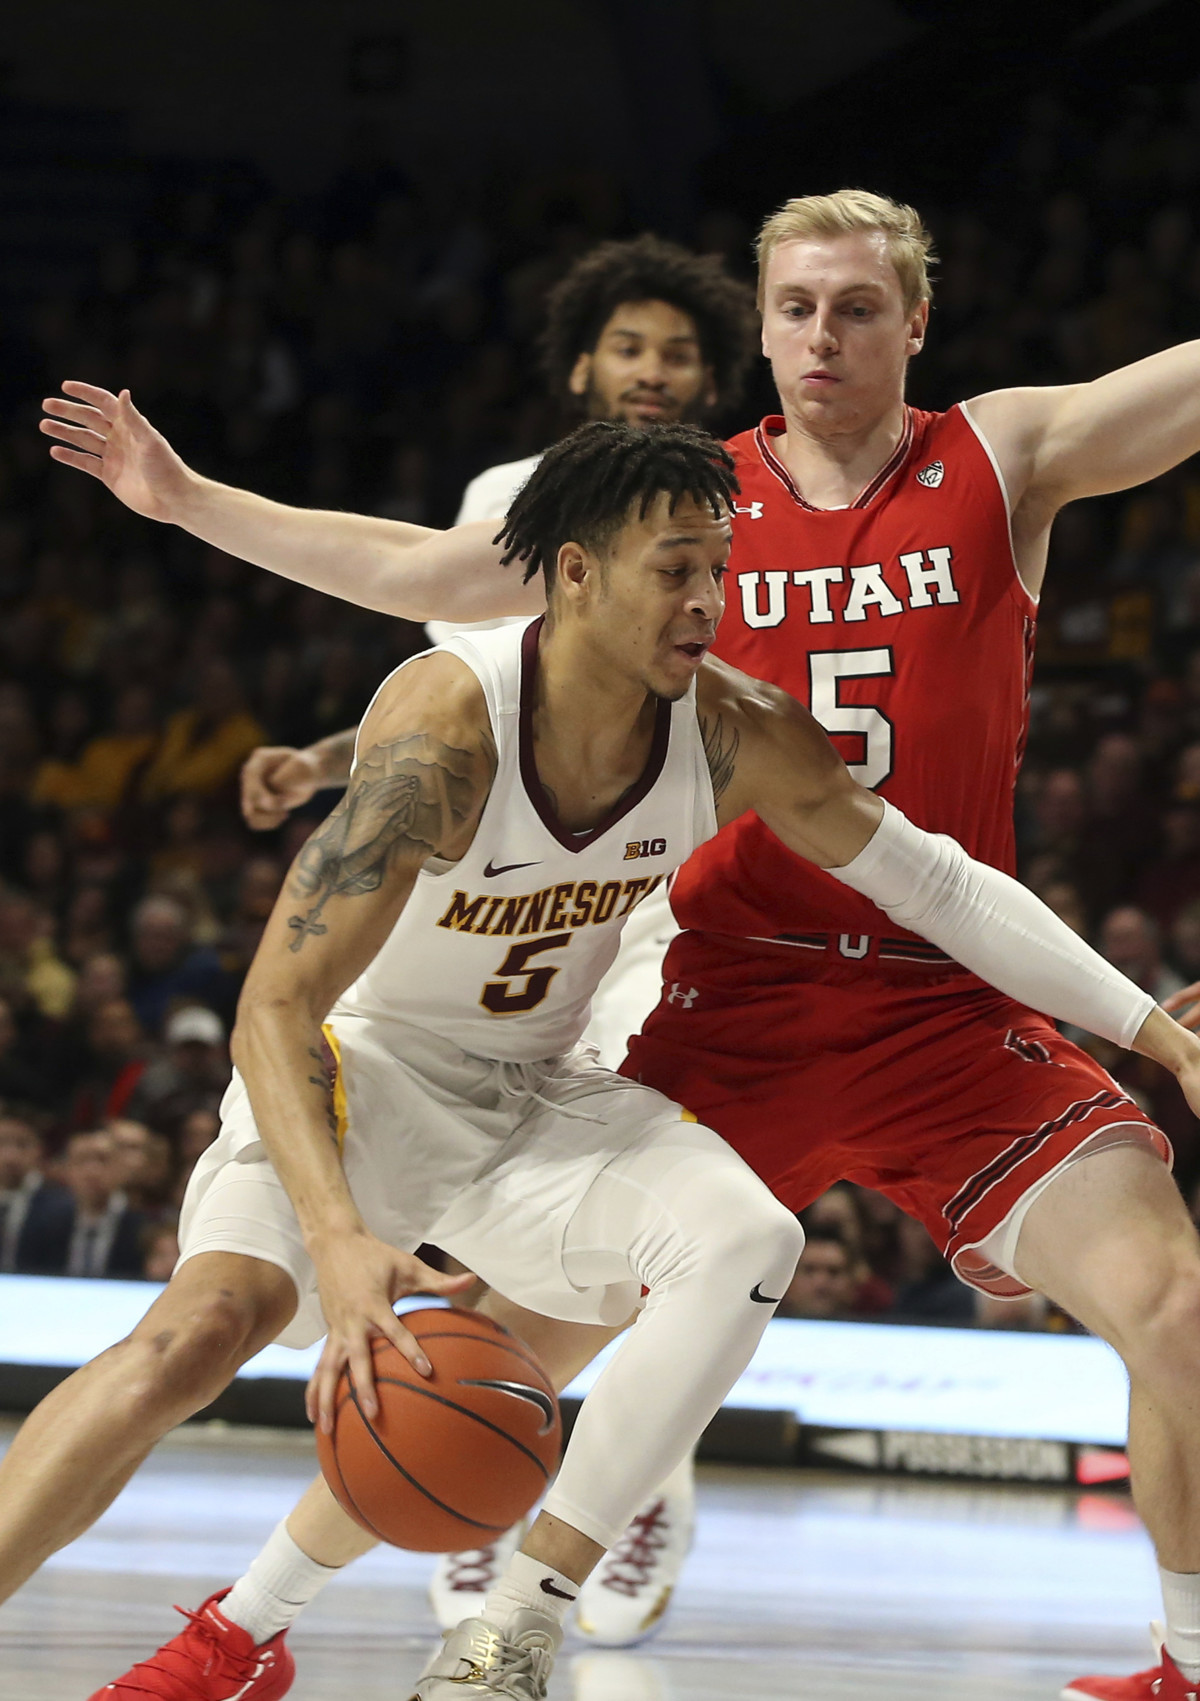 b5b2099e4f1 Simplify is the theme for young Utah basketball team after a rough start to  the season